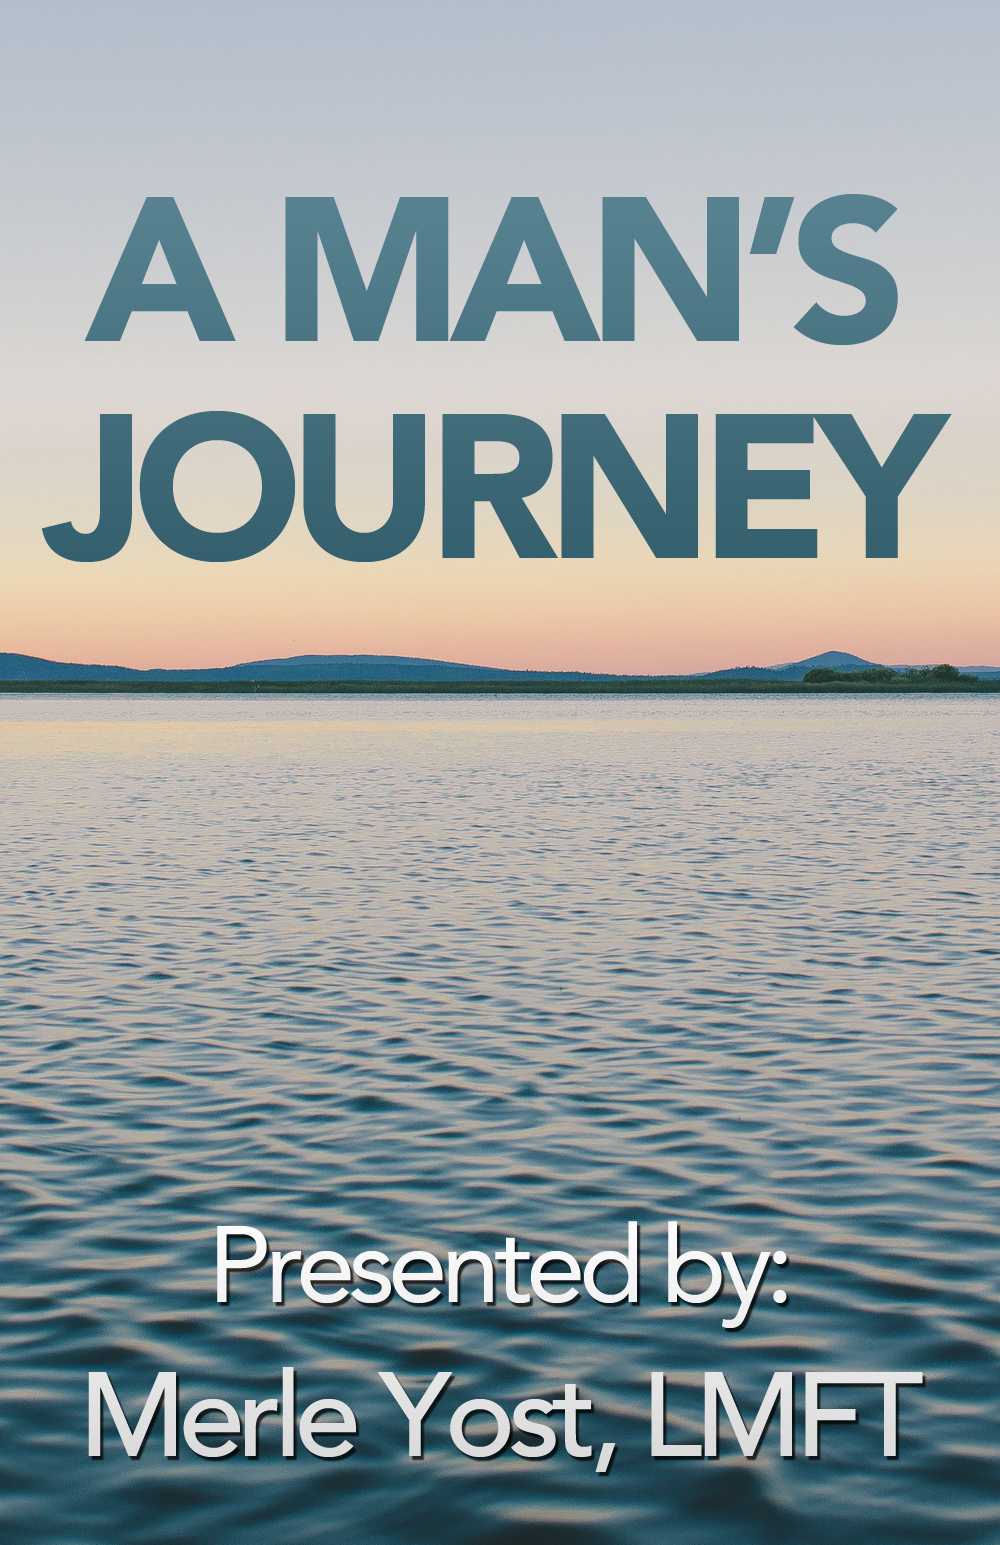 A Man's Journey Online Workshop Poster